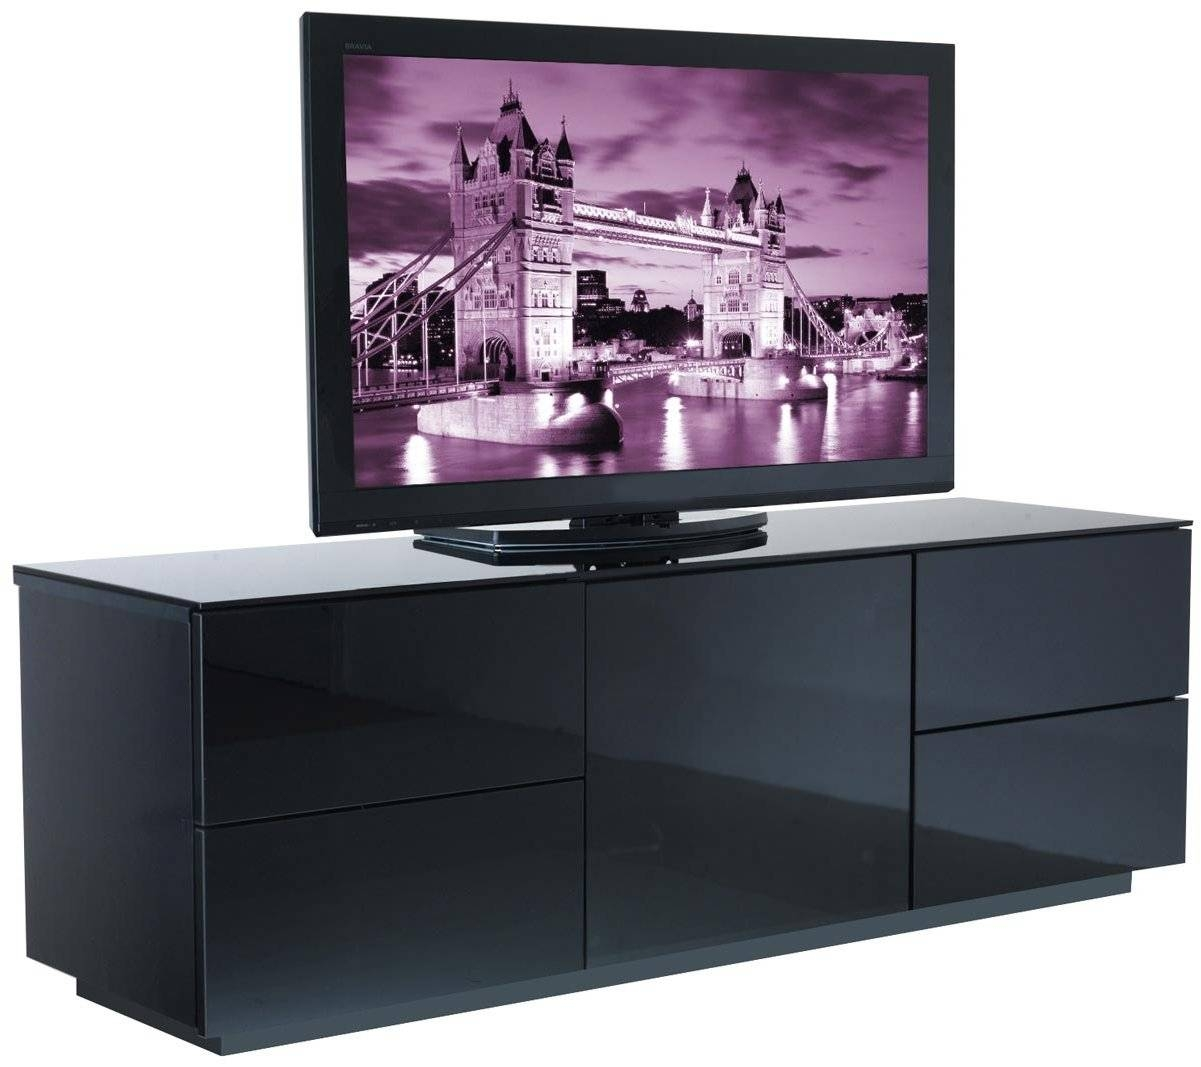 Black High Gloss Tv Cabinets Uk | Memsaheb intended for Shiny Black Tv Stands (Image 4 of 15)